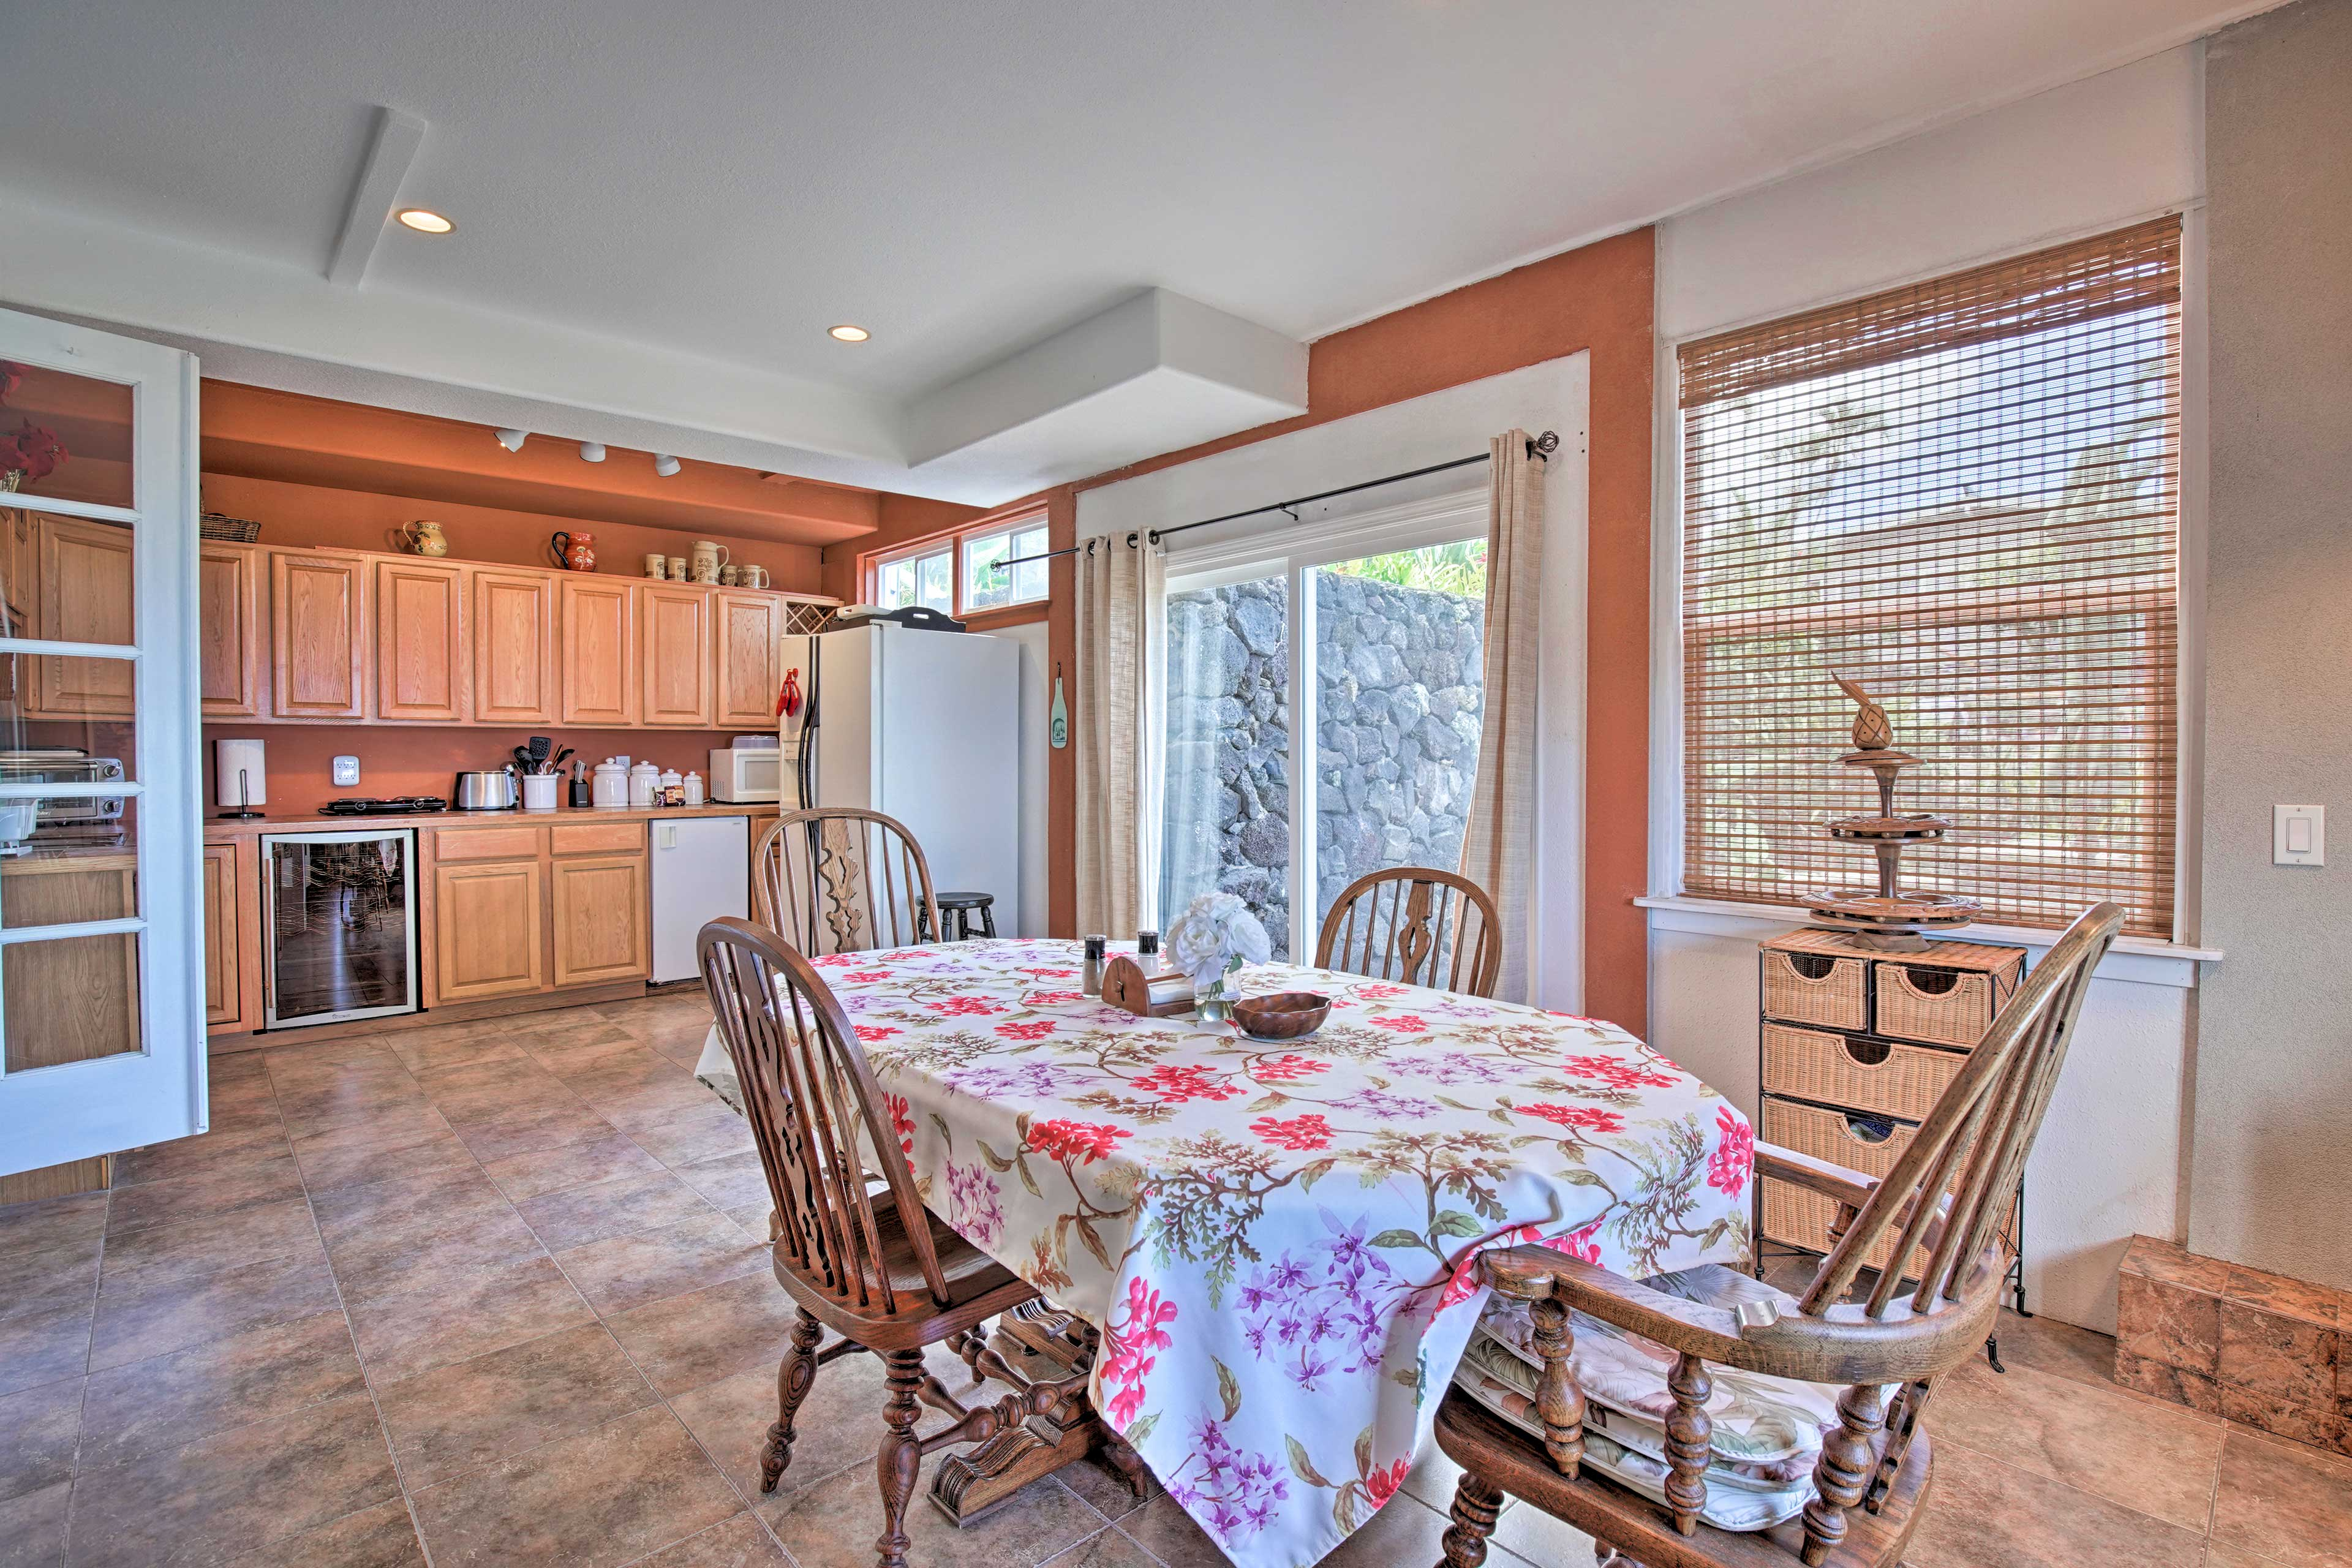 The 'man cave' even boasts its own kitchen and dining space.